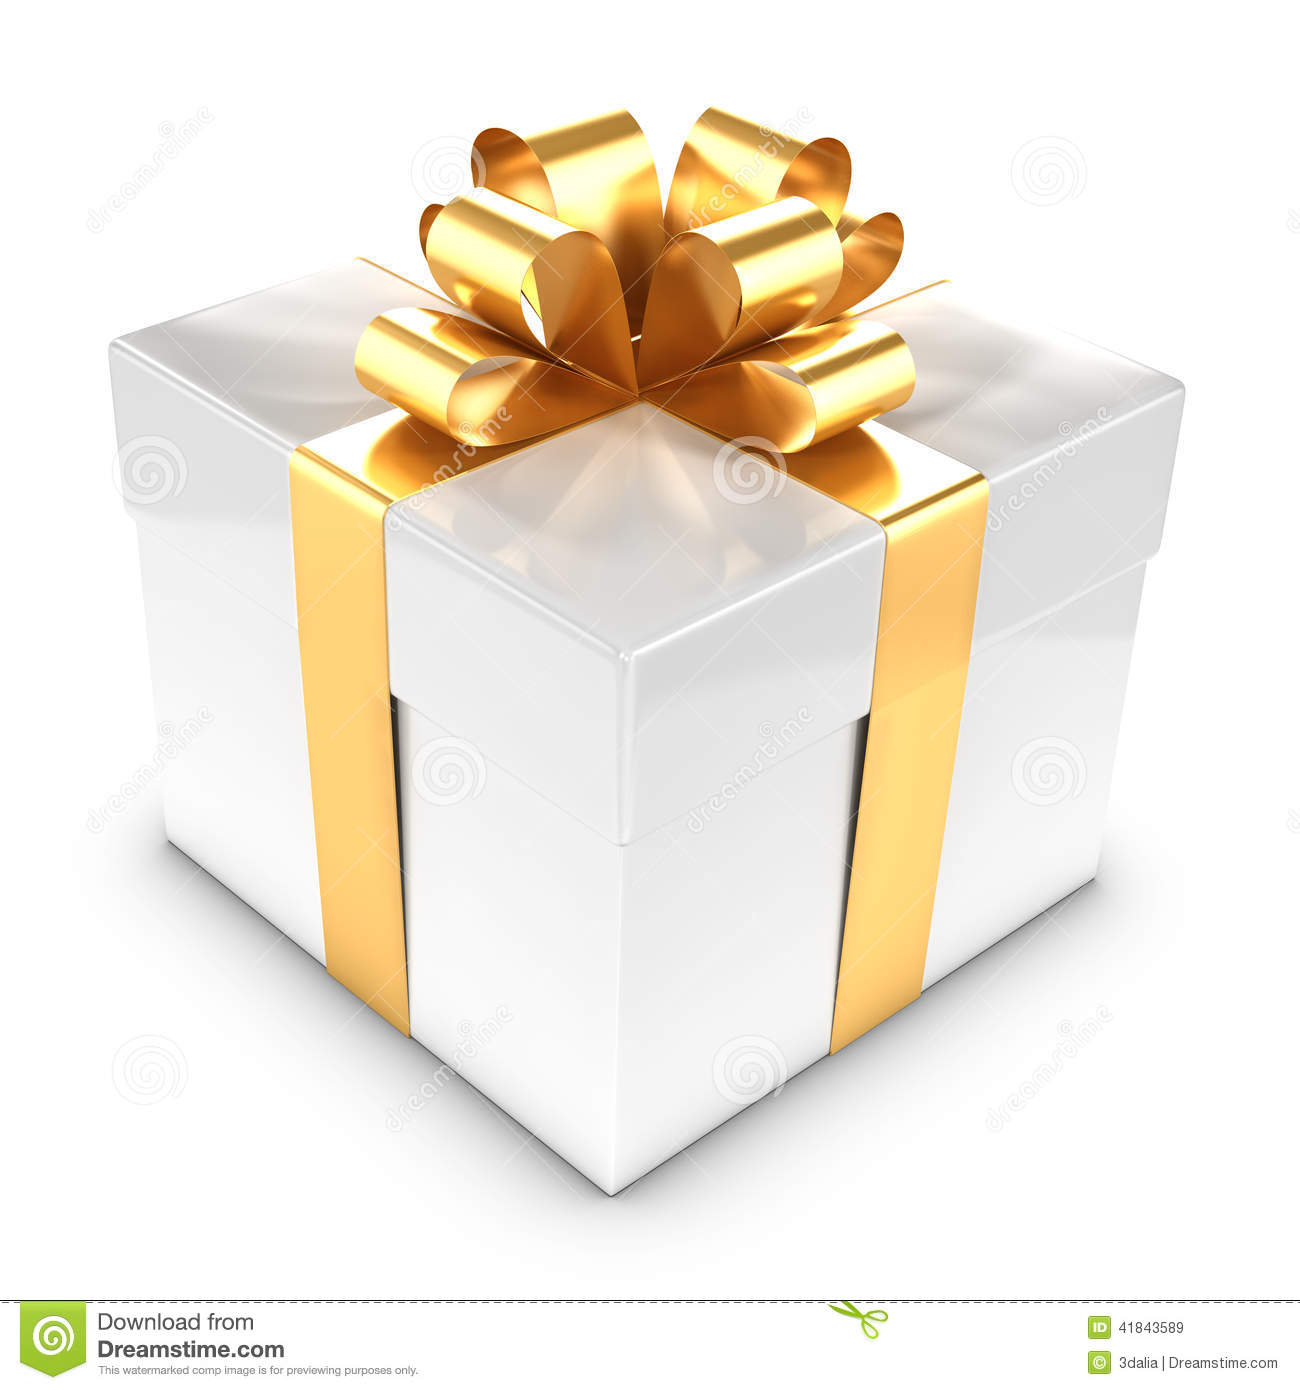 Gift Box Gold : D white and gold gift box stock illustration